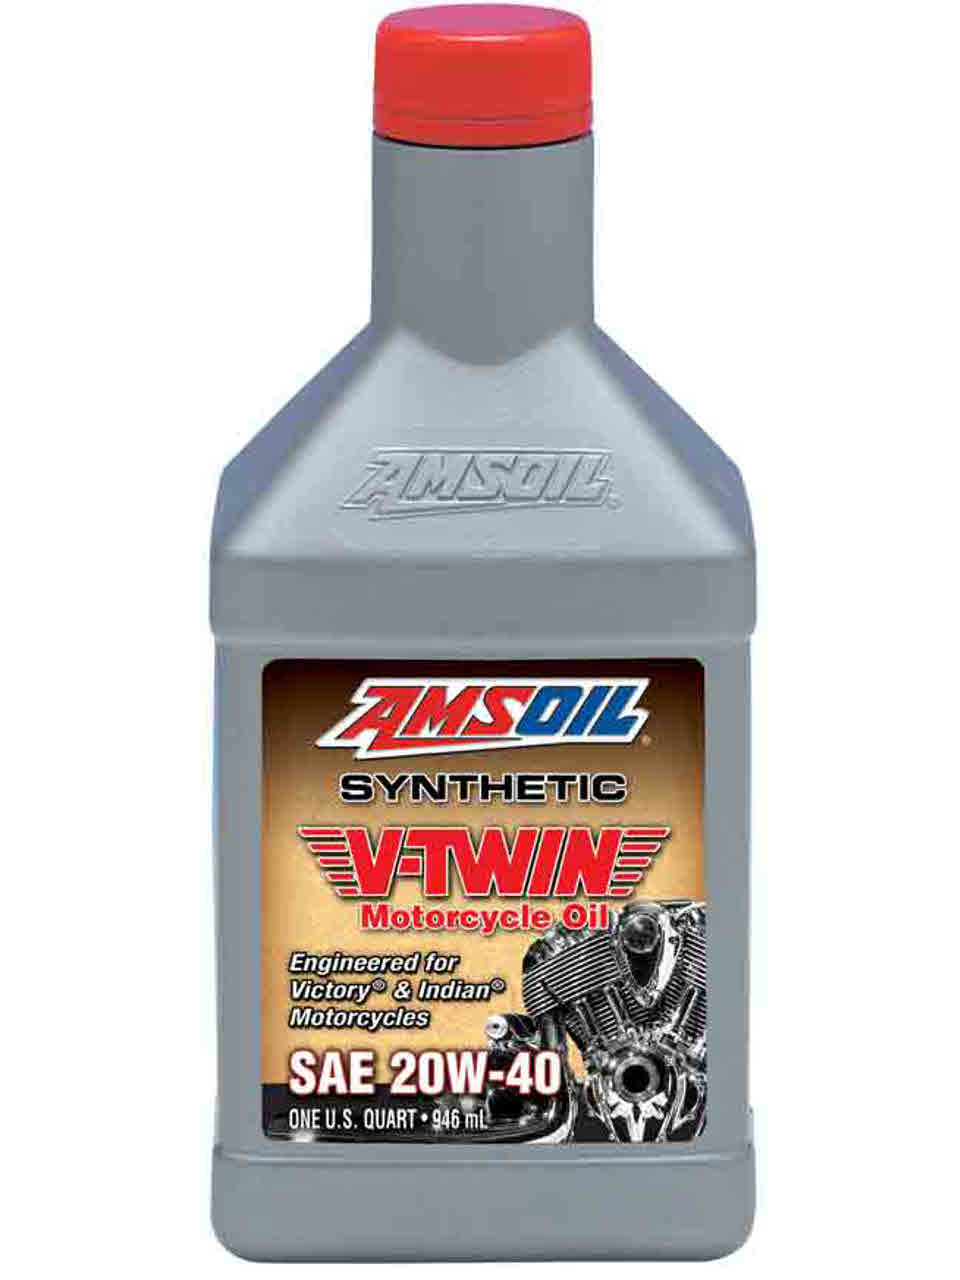 New 20w 40 Synthetic V Twin Motorcycle Oil For Victory